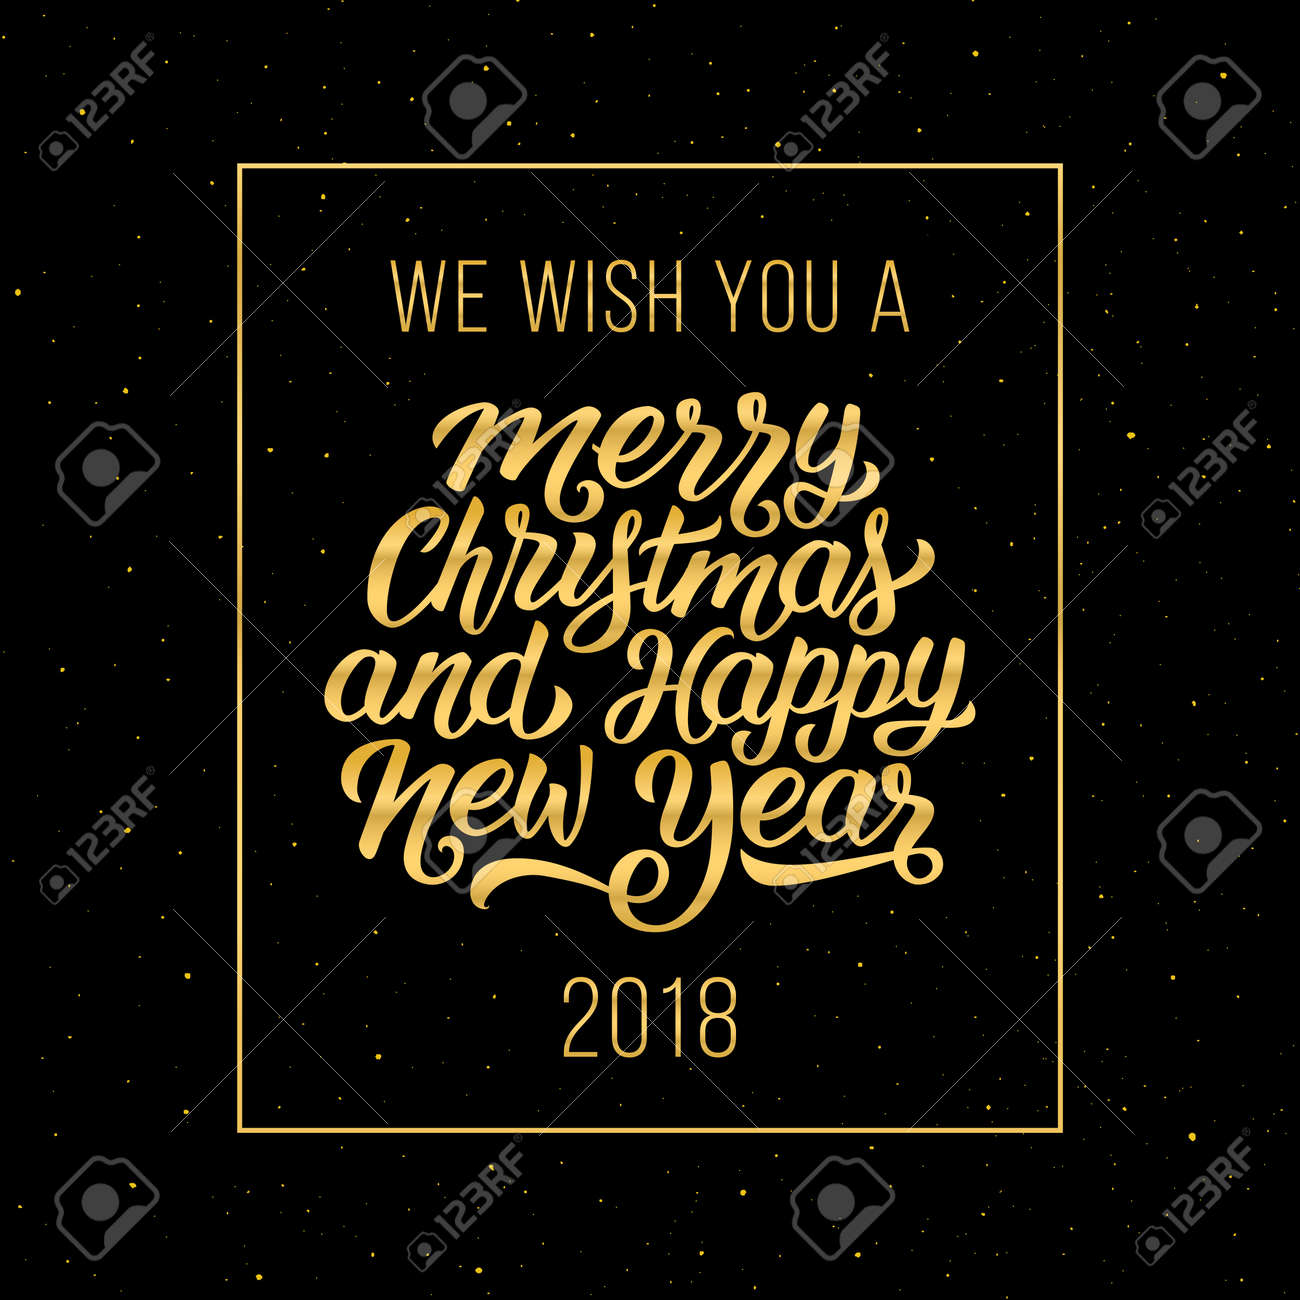 vector we wish you a merry christmas and happy new year 2018 gold text in frame on black background vector illustration with lettering for winter